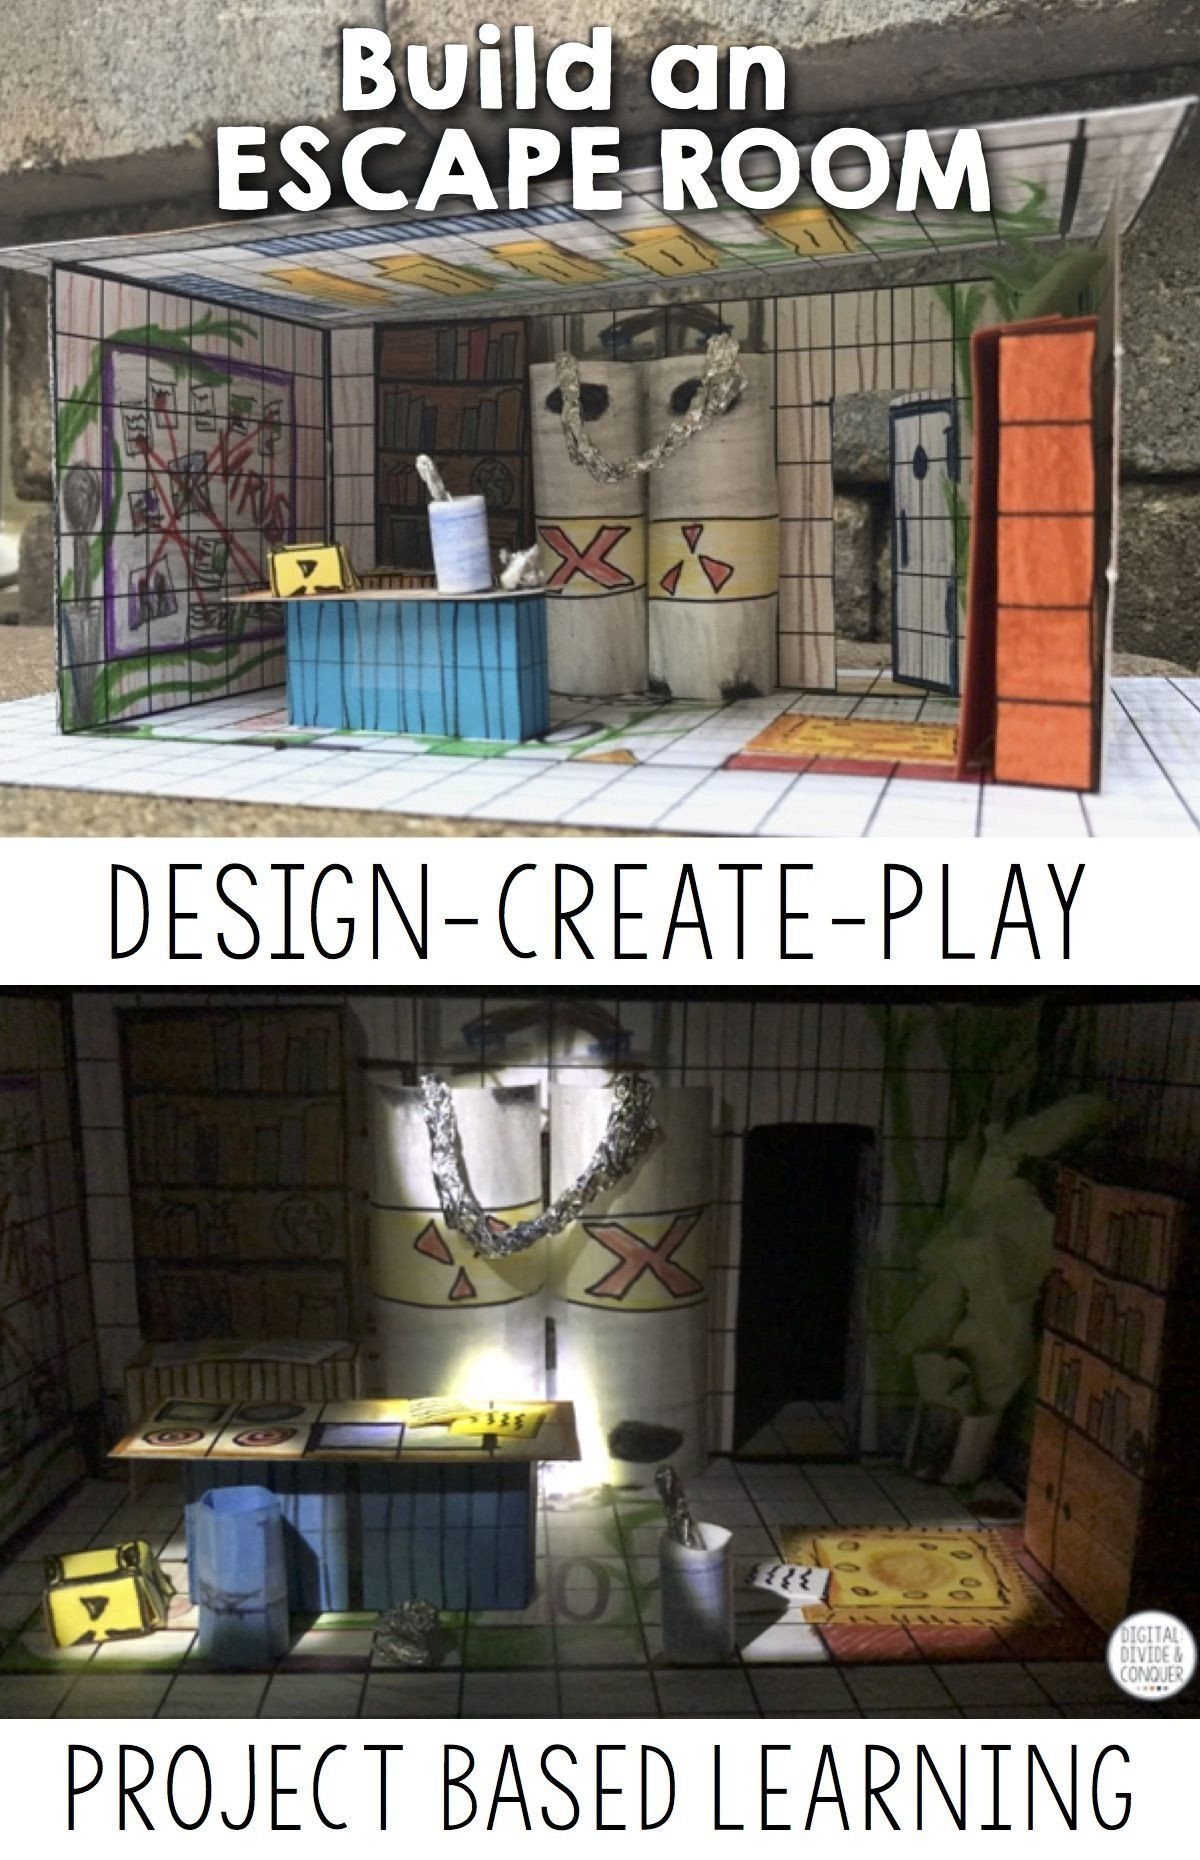 Design Your Own Bedroom Games Fresh Build Your Own Escape Room A Project Based Learning Escape Room Project Based Learning Escape Room Design